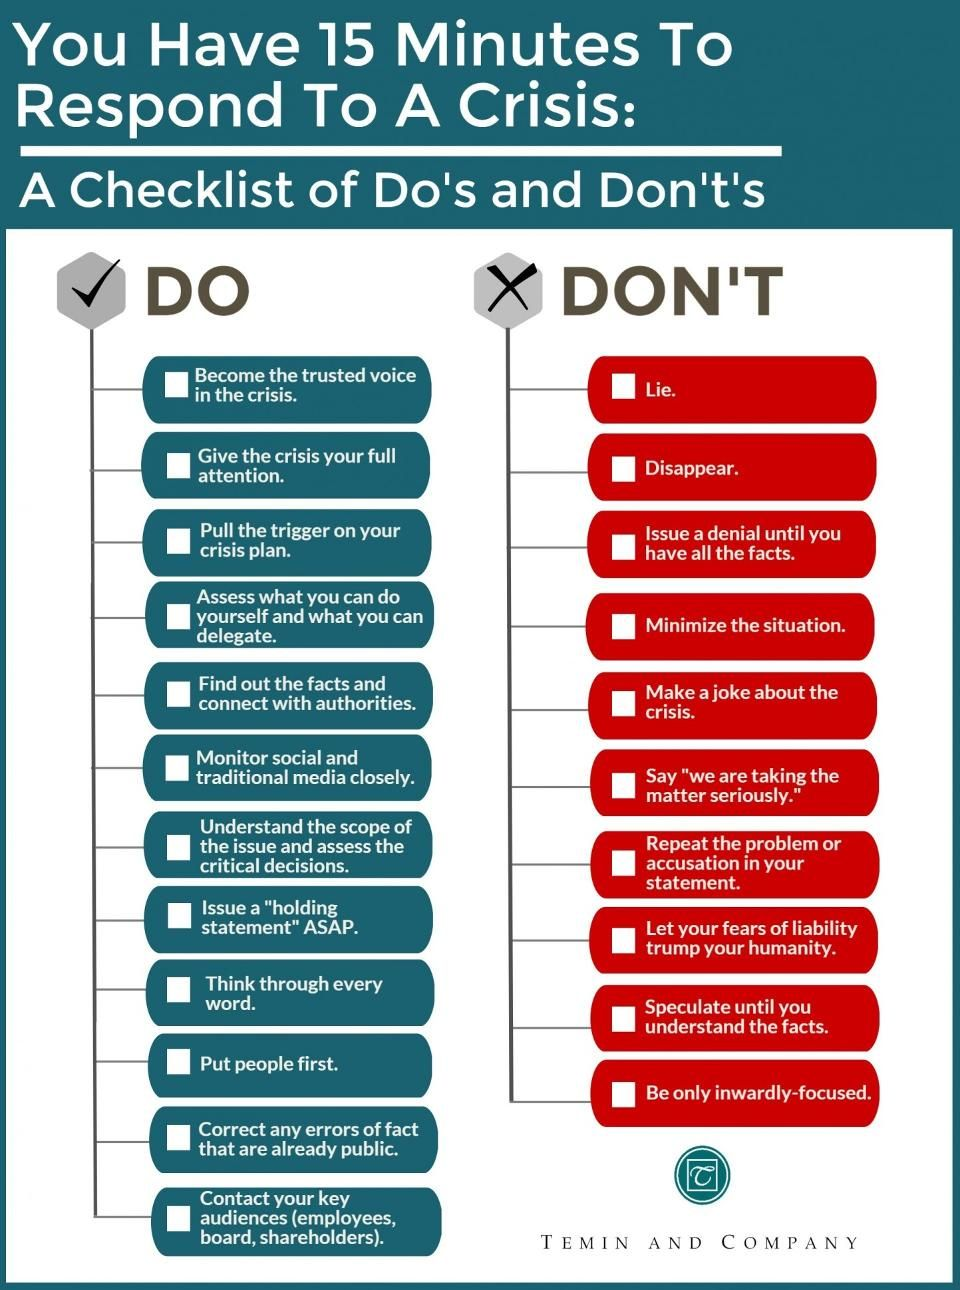 You Have 15 Minutes To Respond To A Crisis A Checklist of